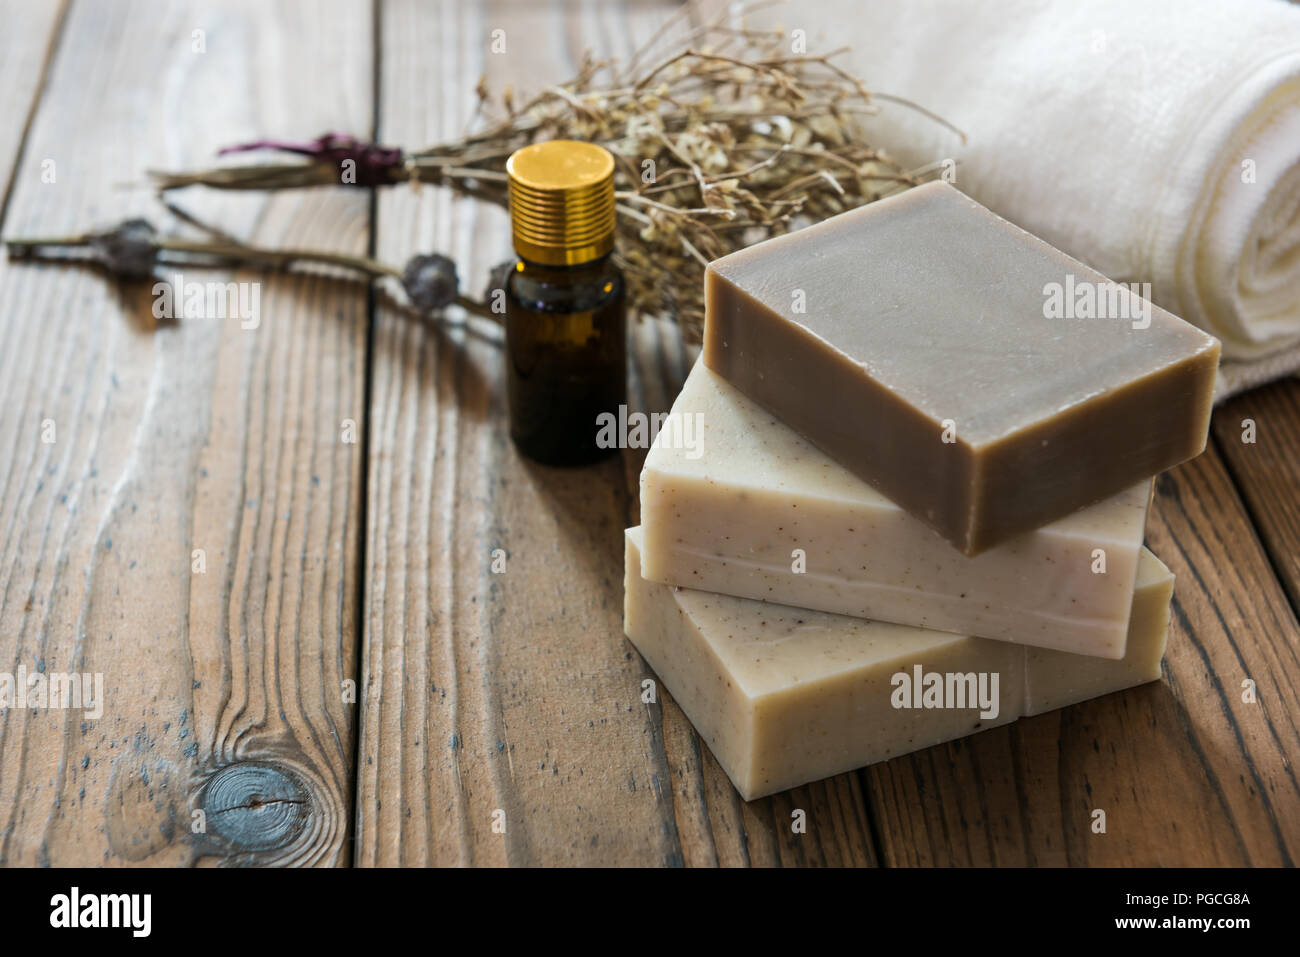 Handmade natural soap on wooden background - Stock Image